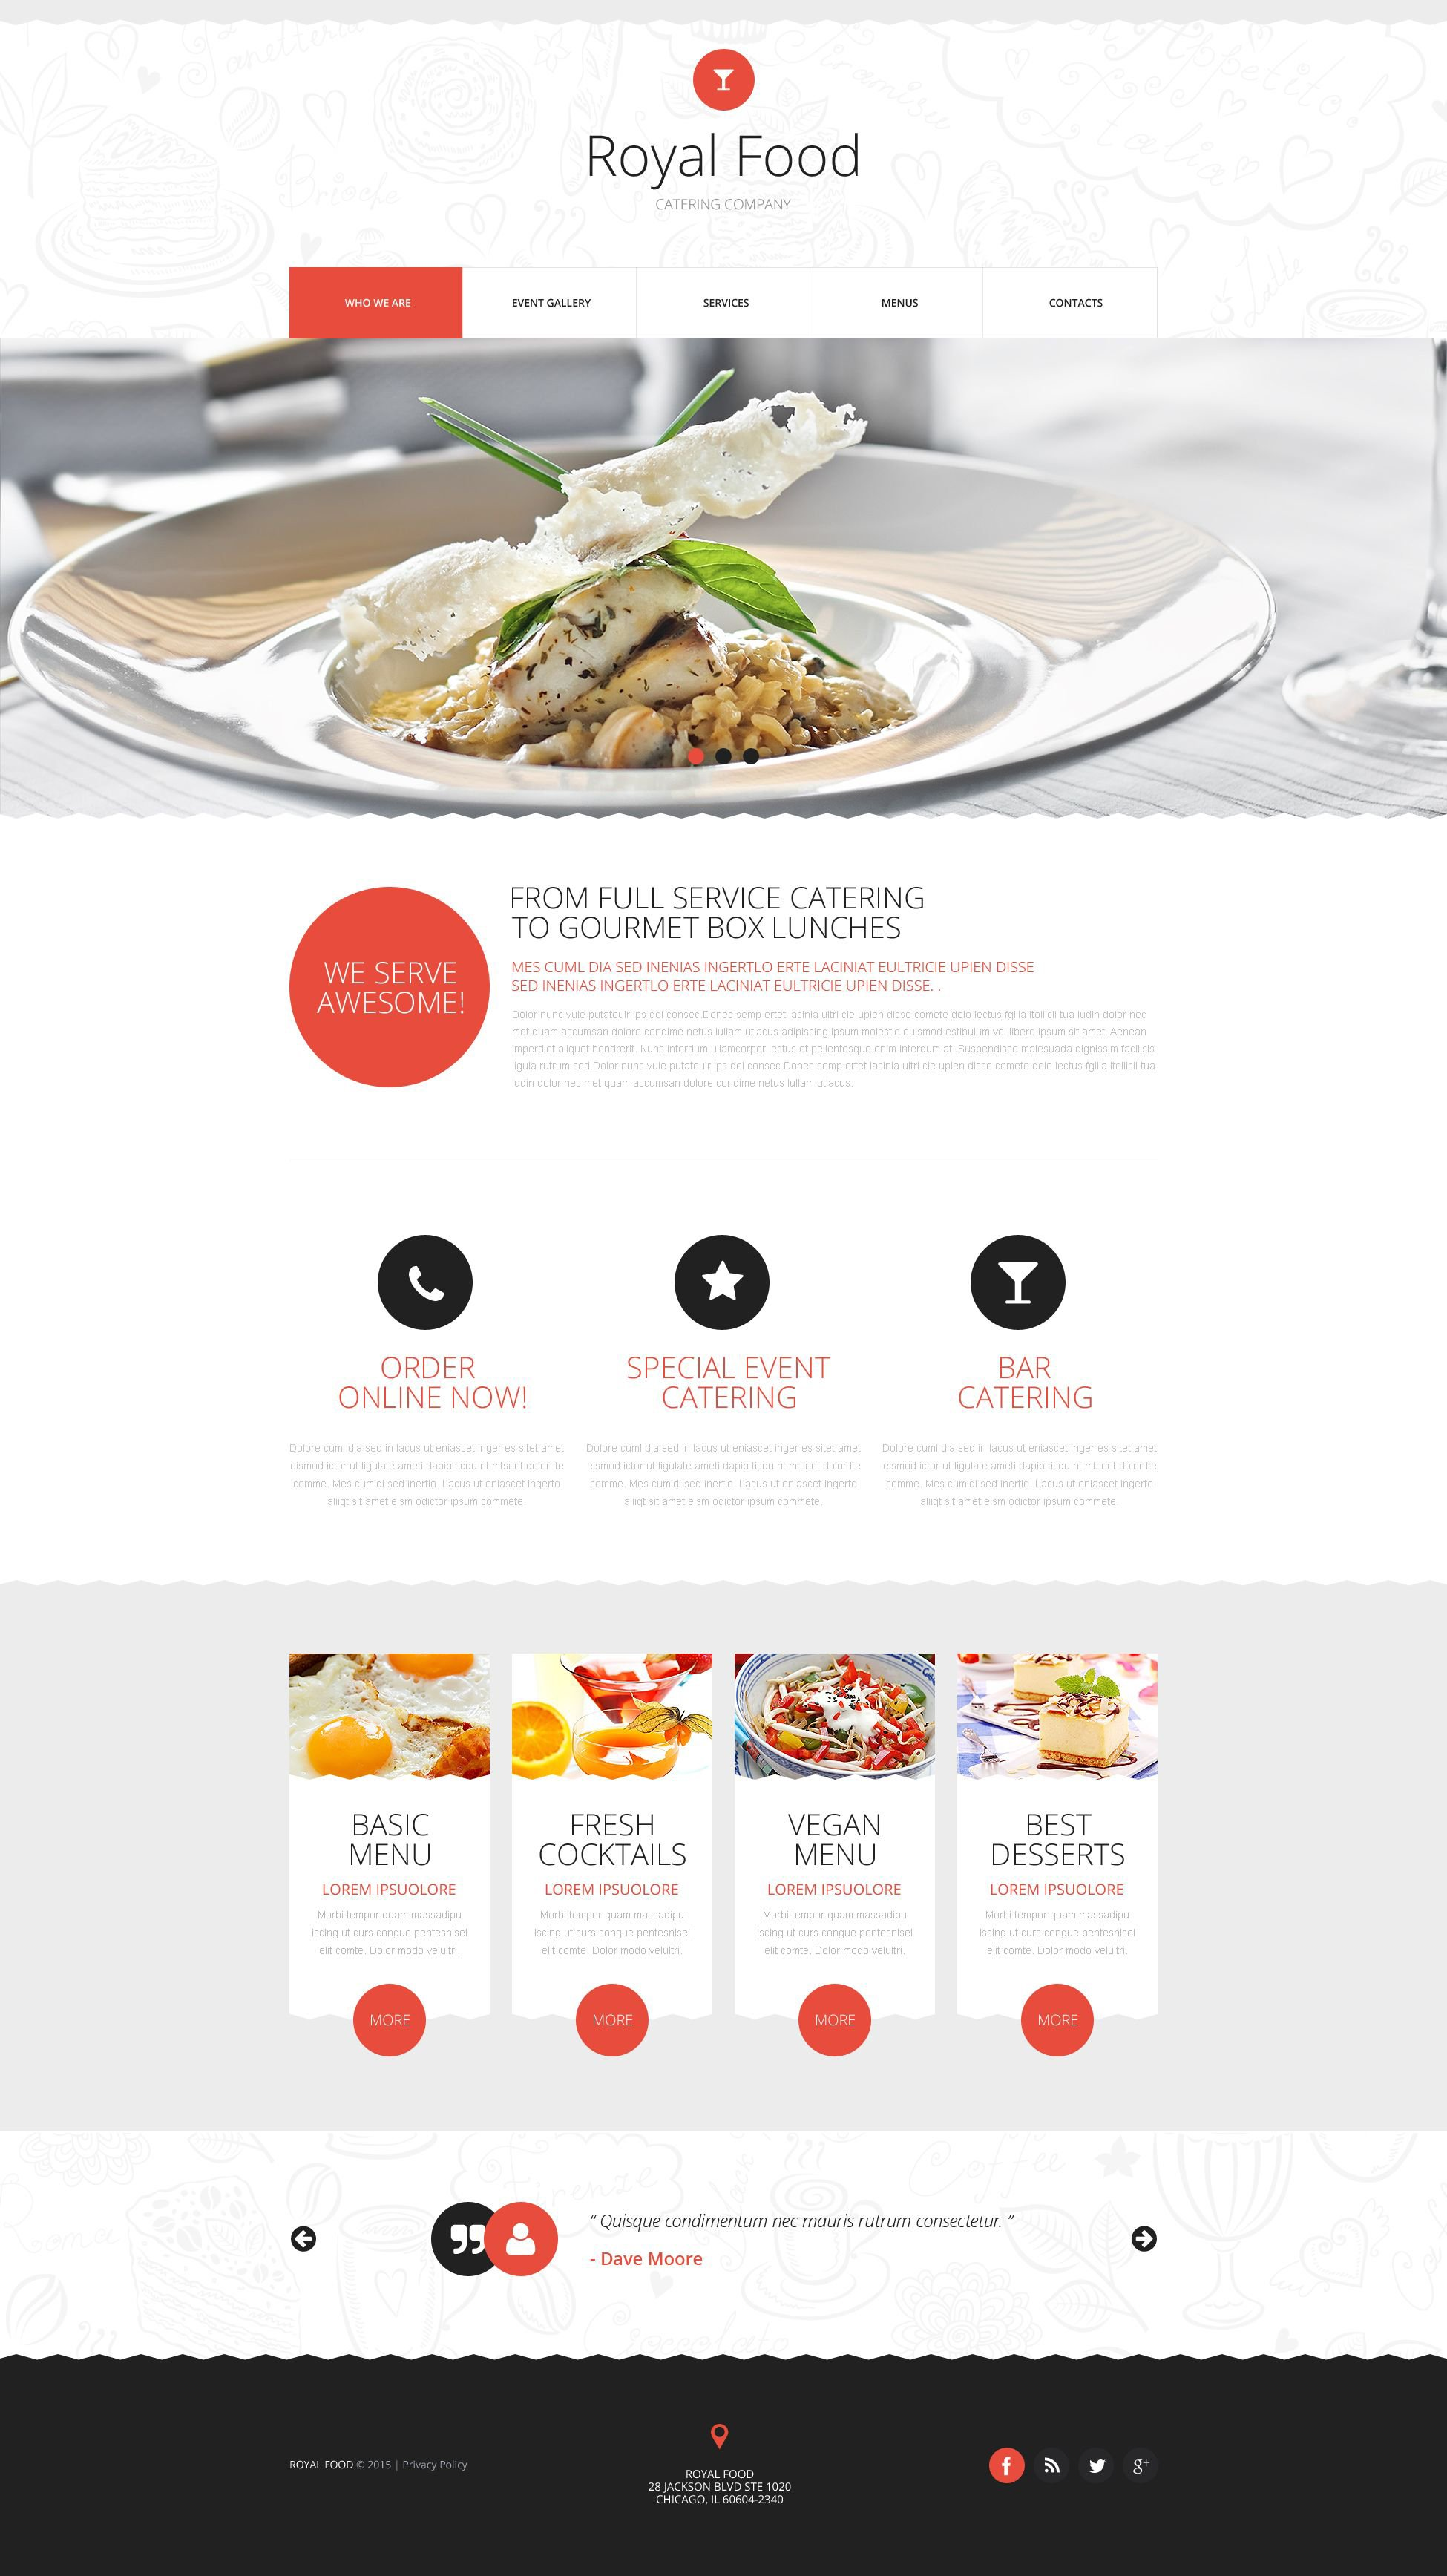 The Royal Food Catering Responsive Javascript Animated Design 53290, one of the best website templates of its kind (food & drink, most popular), also known as Royal Food catering website template, online services company website template, service website template, drinks website template, equipment website template, services website template, specials website template, menu website template, cake website template, catering website template, delivery website template, lunch website template, dinner website template, products website template, tasty website template, fruits website template, sweets website template, cookies website template, receipts and related with Royal Food catering, online services company, service, drinks, equipment, services, specials, menu, cake, catering, delivery, lunch, dinner, products, tasty, fruits, sweets, cookies, receipts, etc.